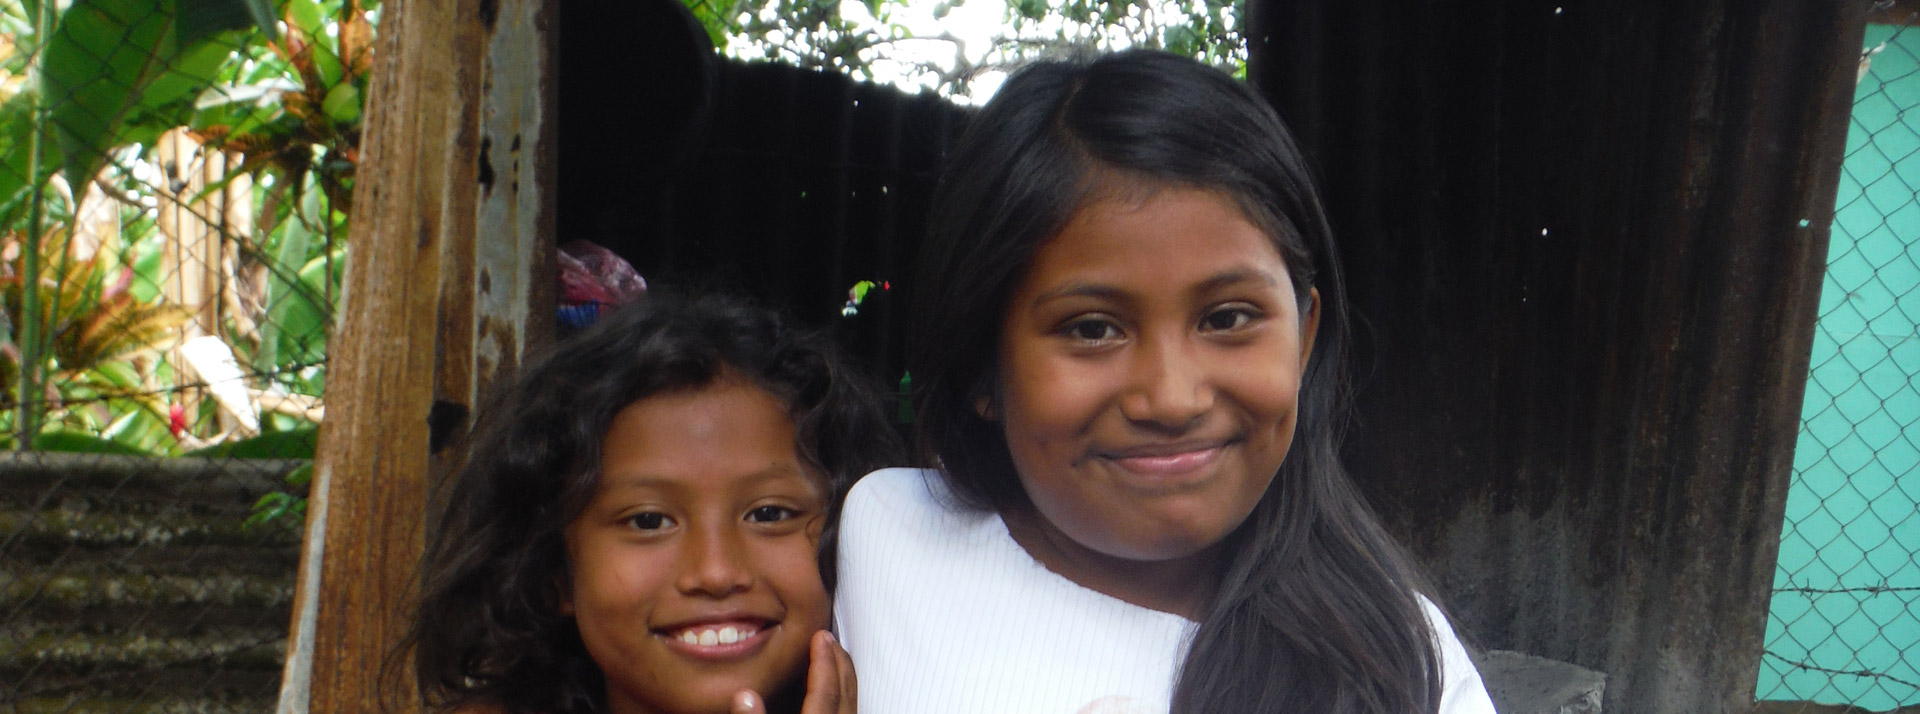 We exist to respond to the needs of disadvantaged children in Central America